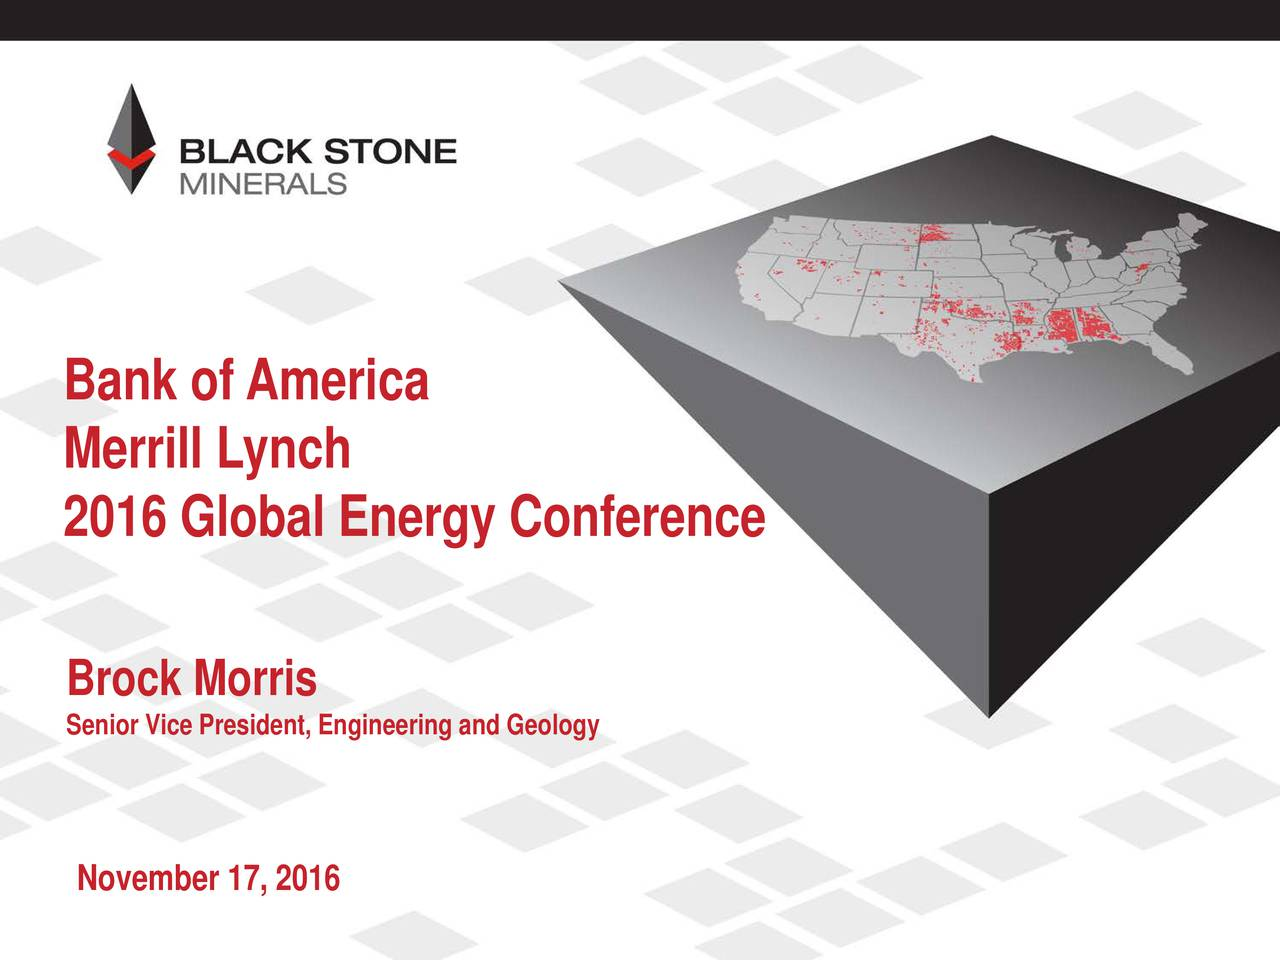 Merrill Lynch 2016 Global Energy Conference Brock Morris Senior Vice President, Engineering and Geology November 17, 2016